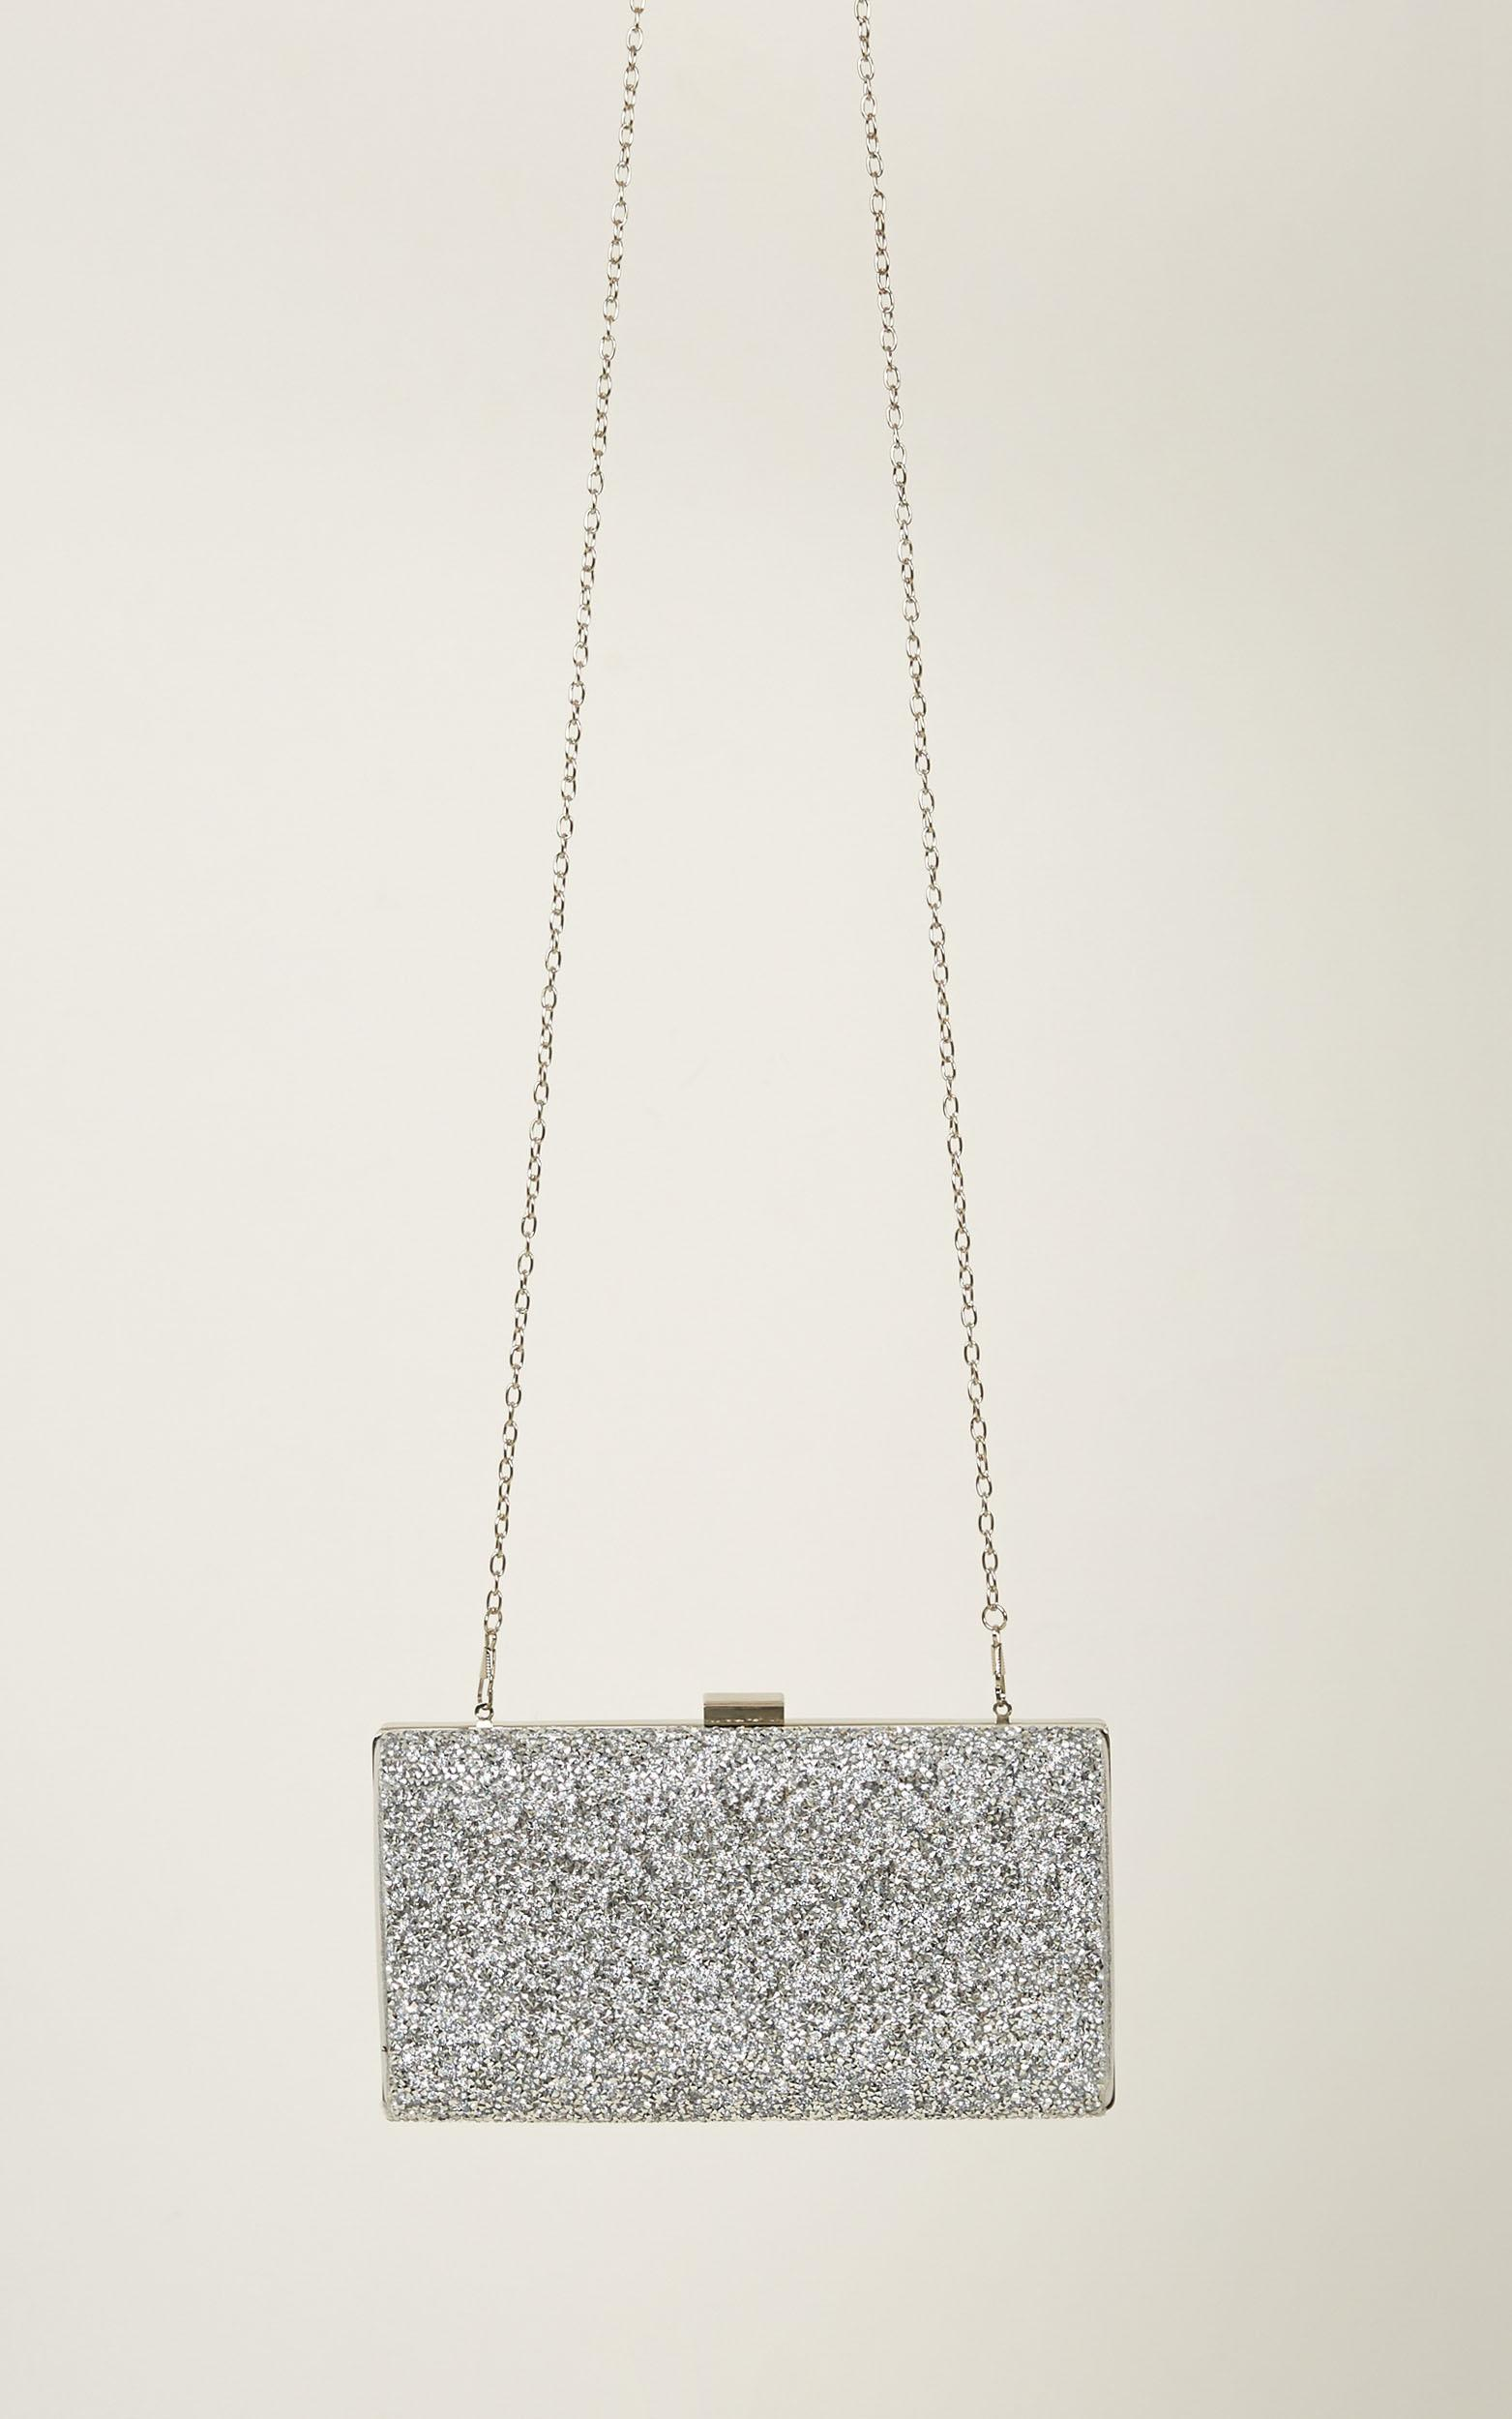 Sofie Clutch In Silver Glitter, , hi-res image number null